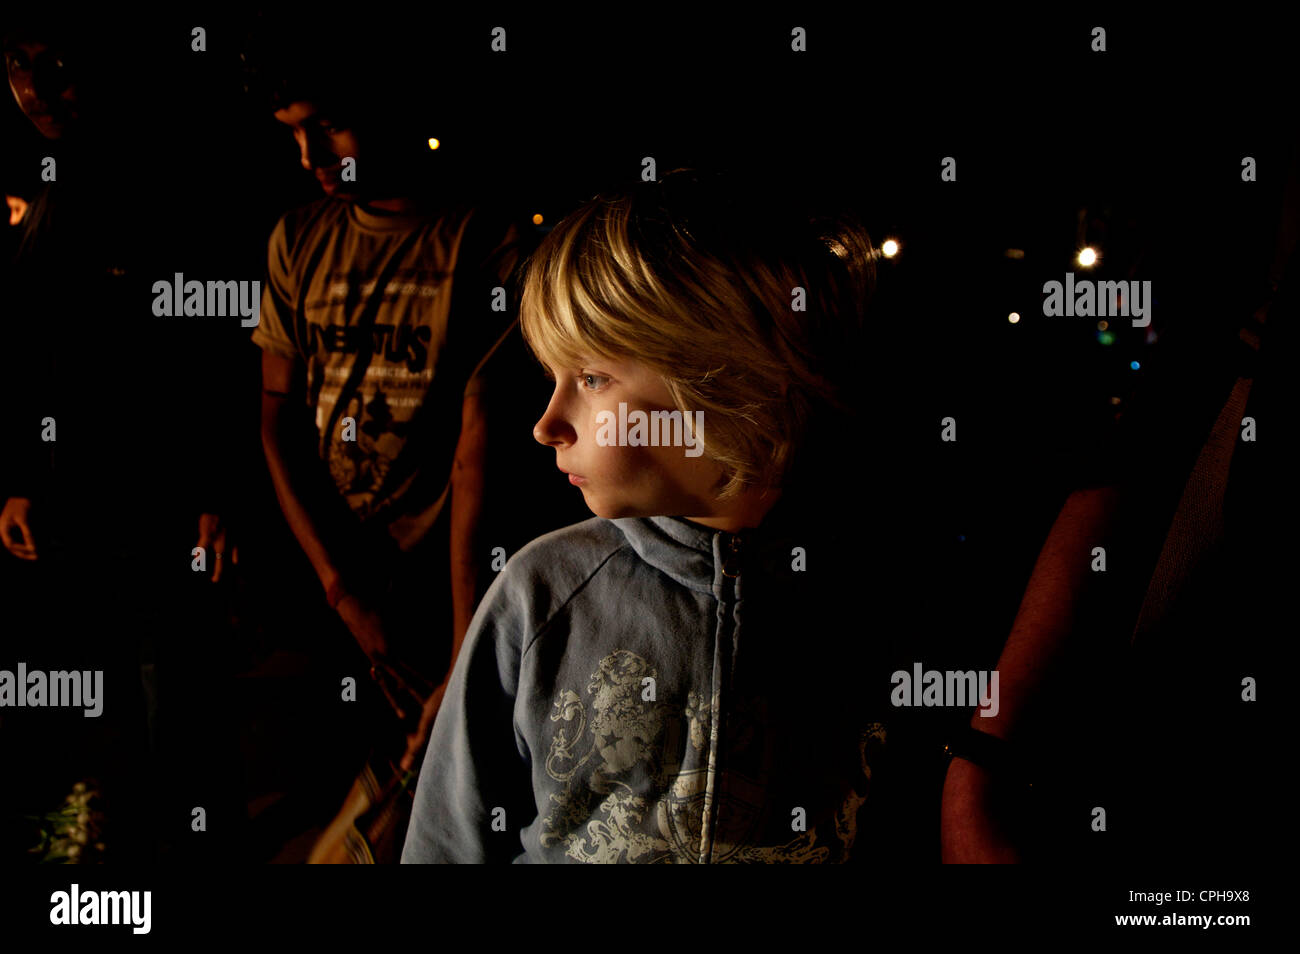 European boy on indian nightmarket - Stock Image